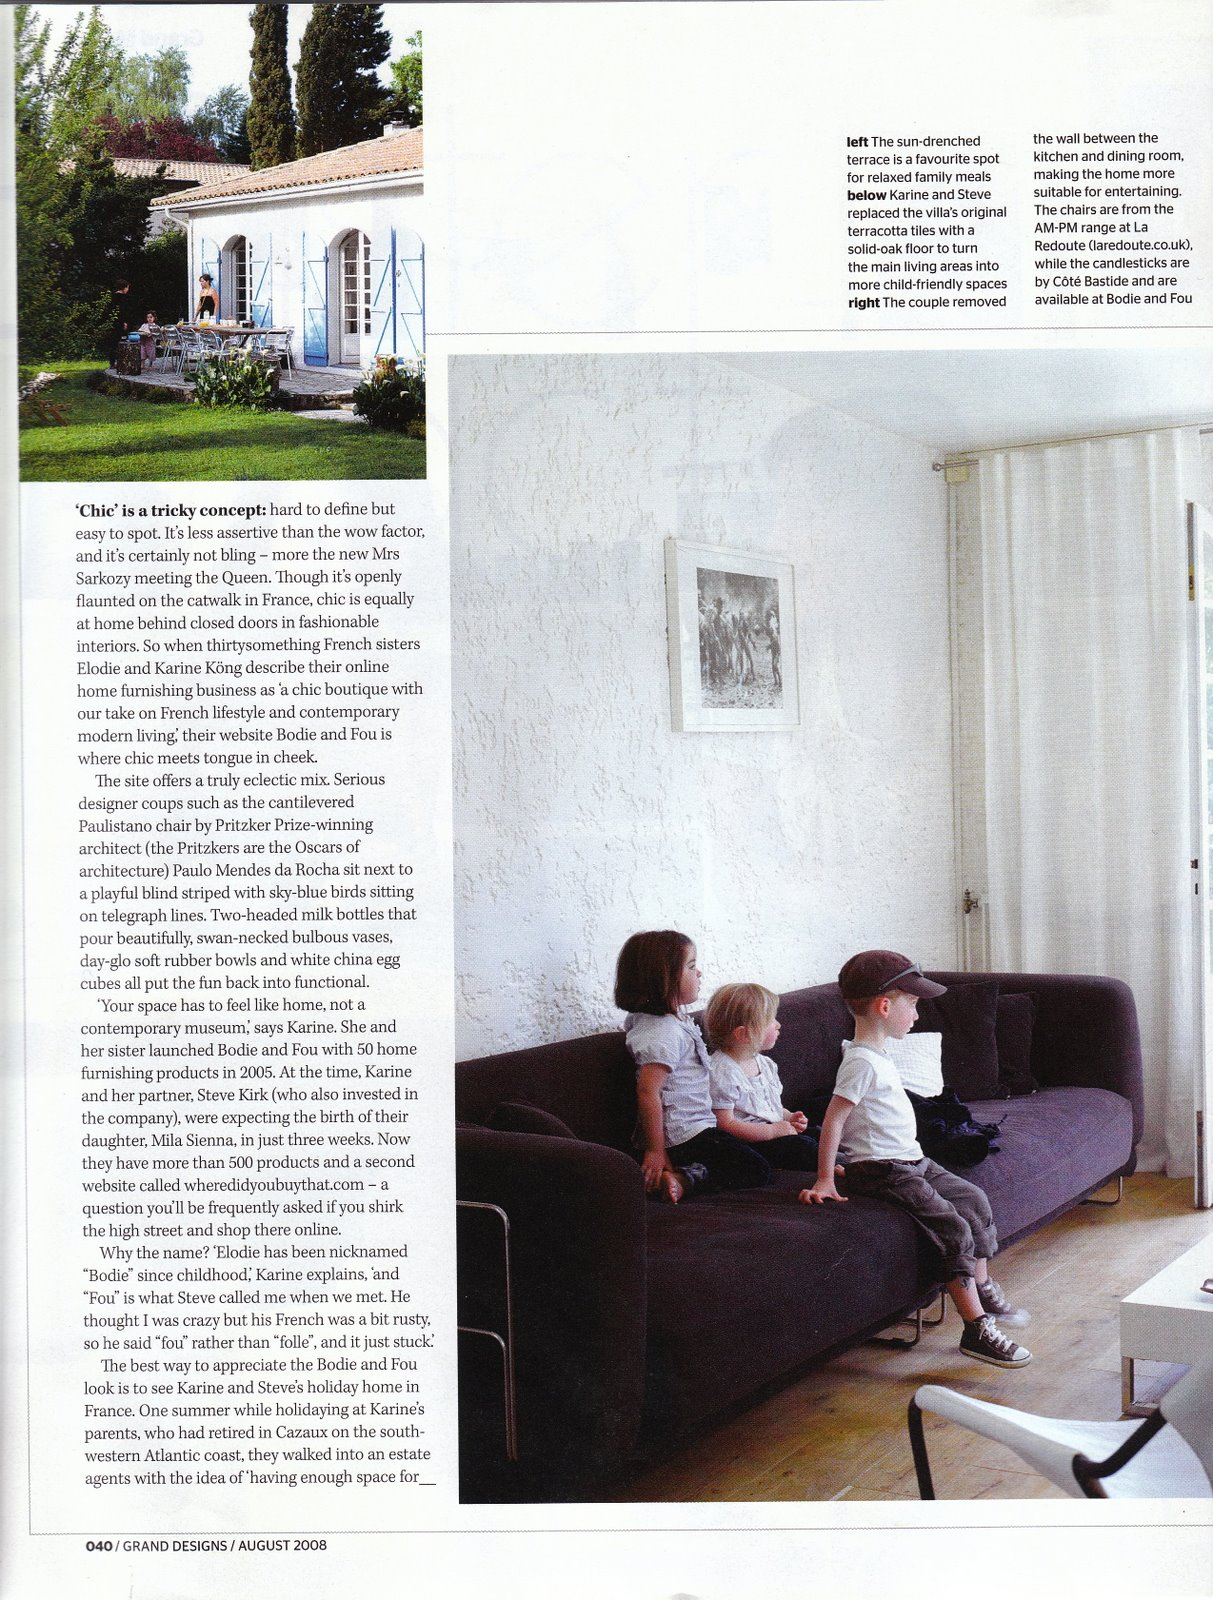 Our French home in Grand Designs magazine